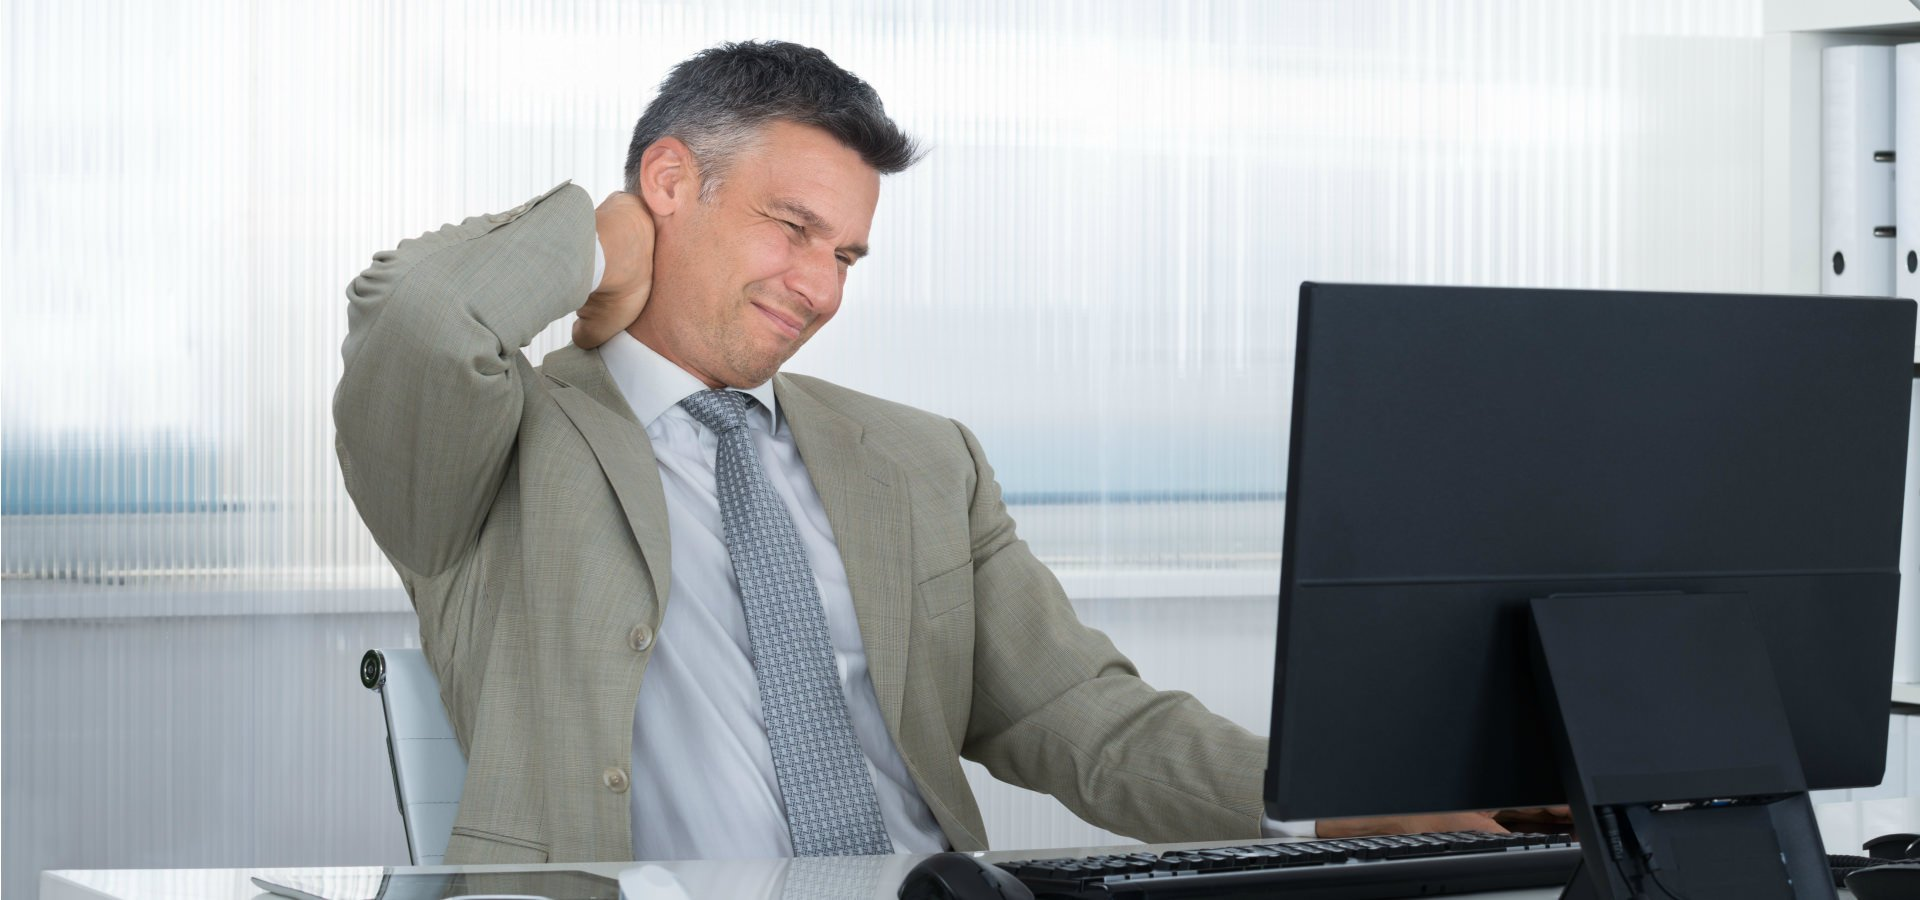 Man complaining of neck pain whilst sitting at a desk